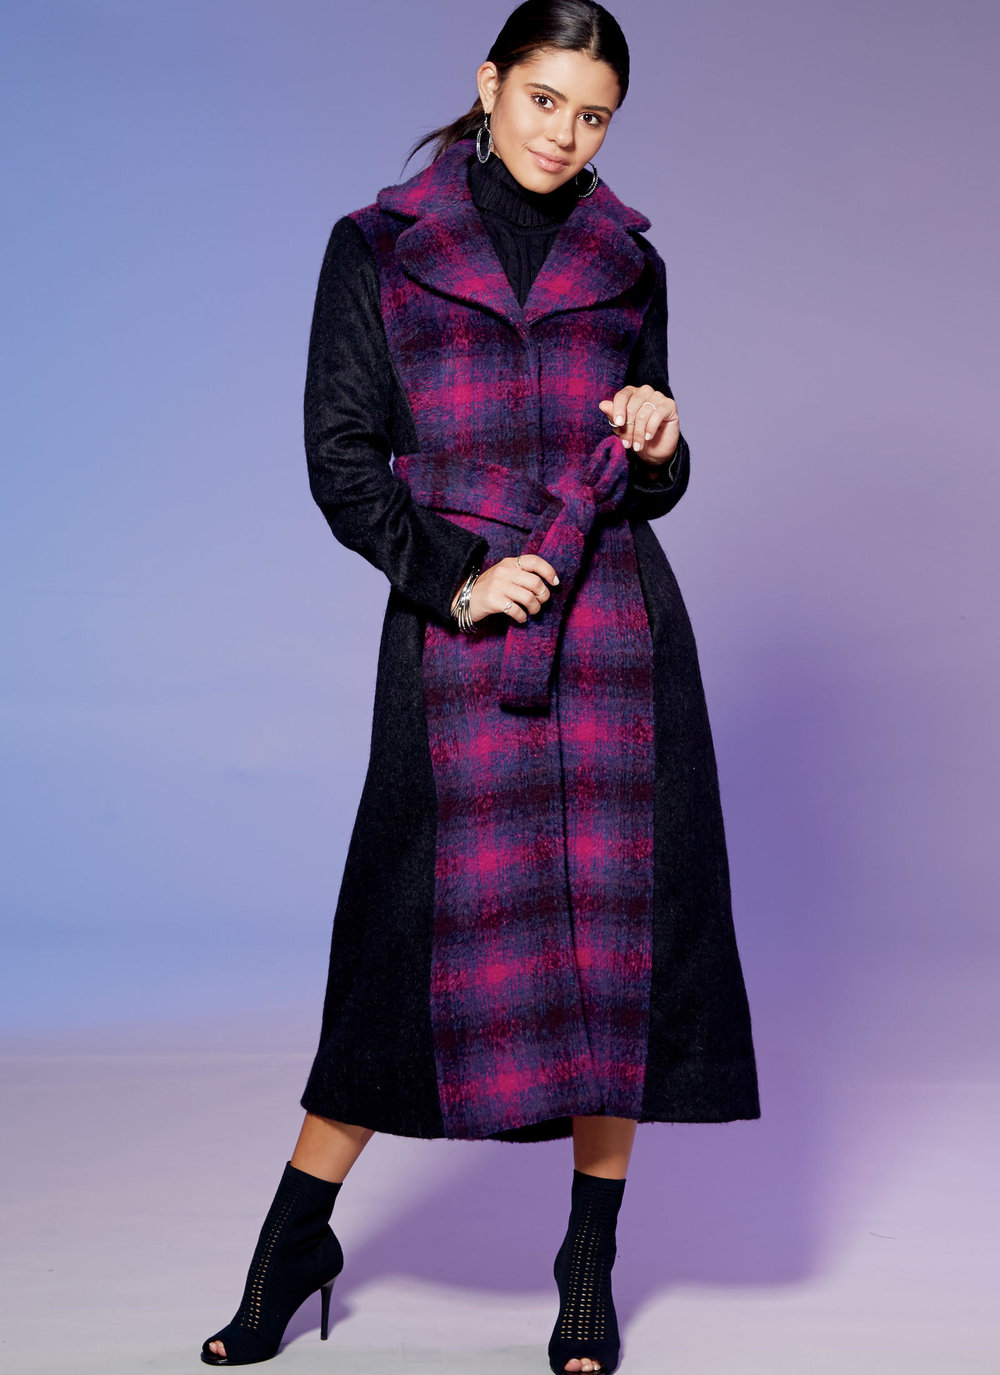 Fall/Winter '17 trends and sewing inspiration. McCalls 7667: Belted coat.